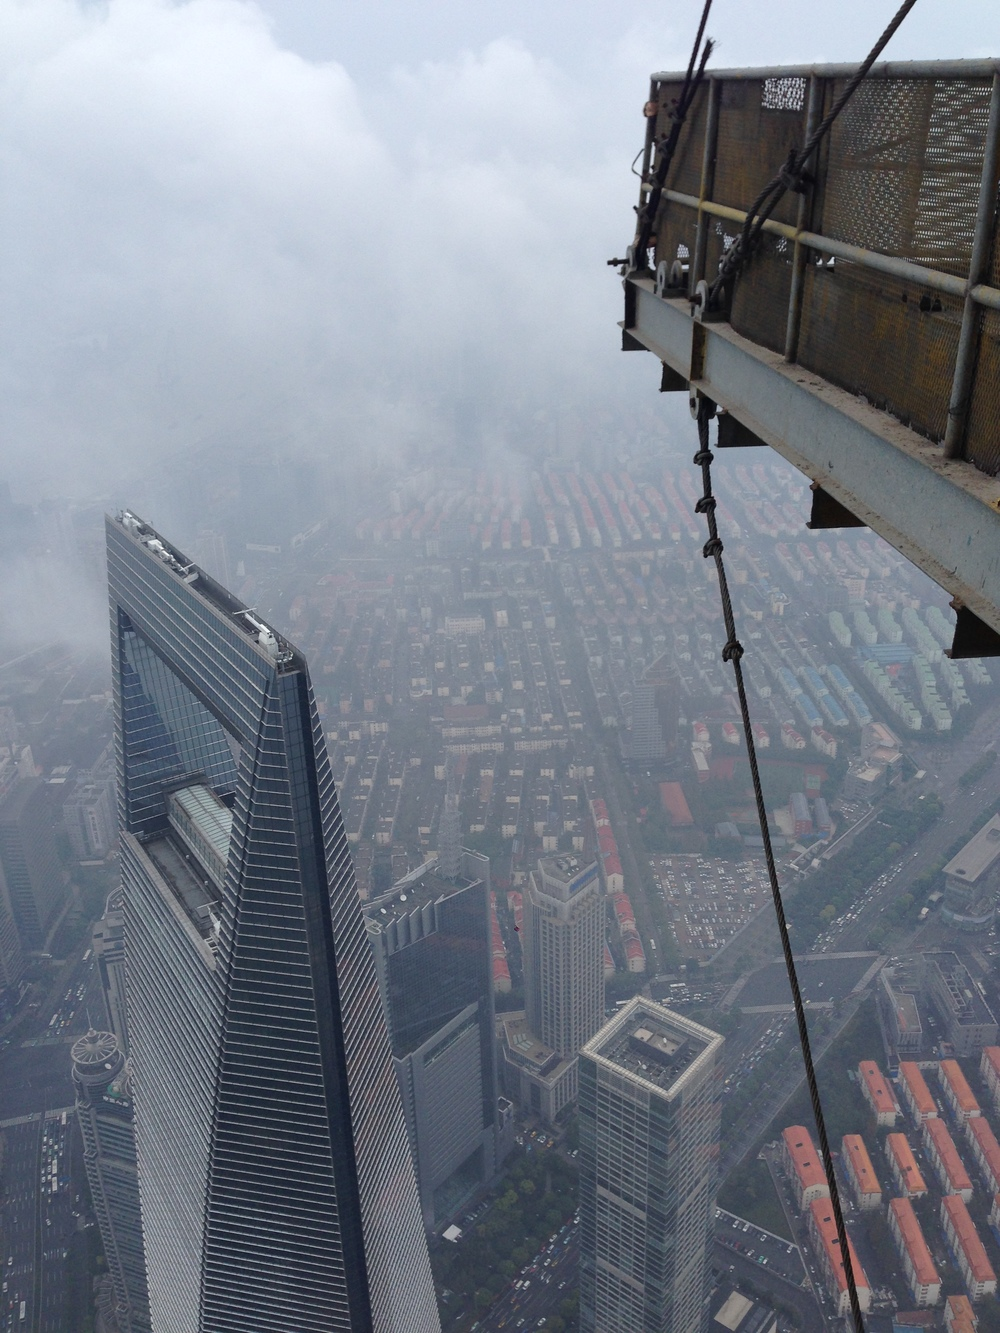 Above Pudong